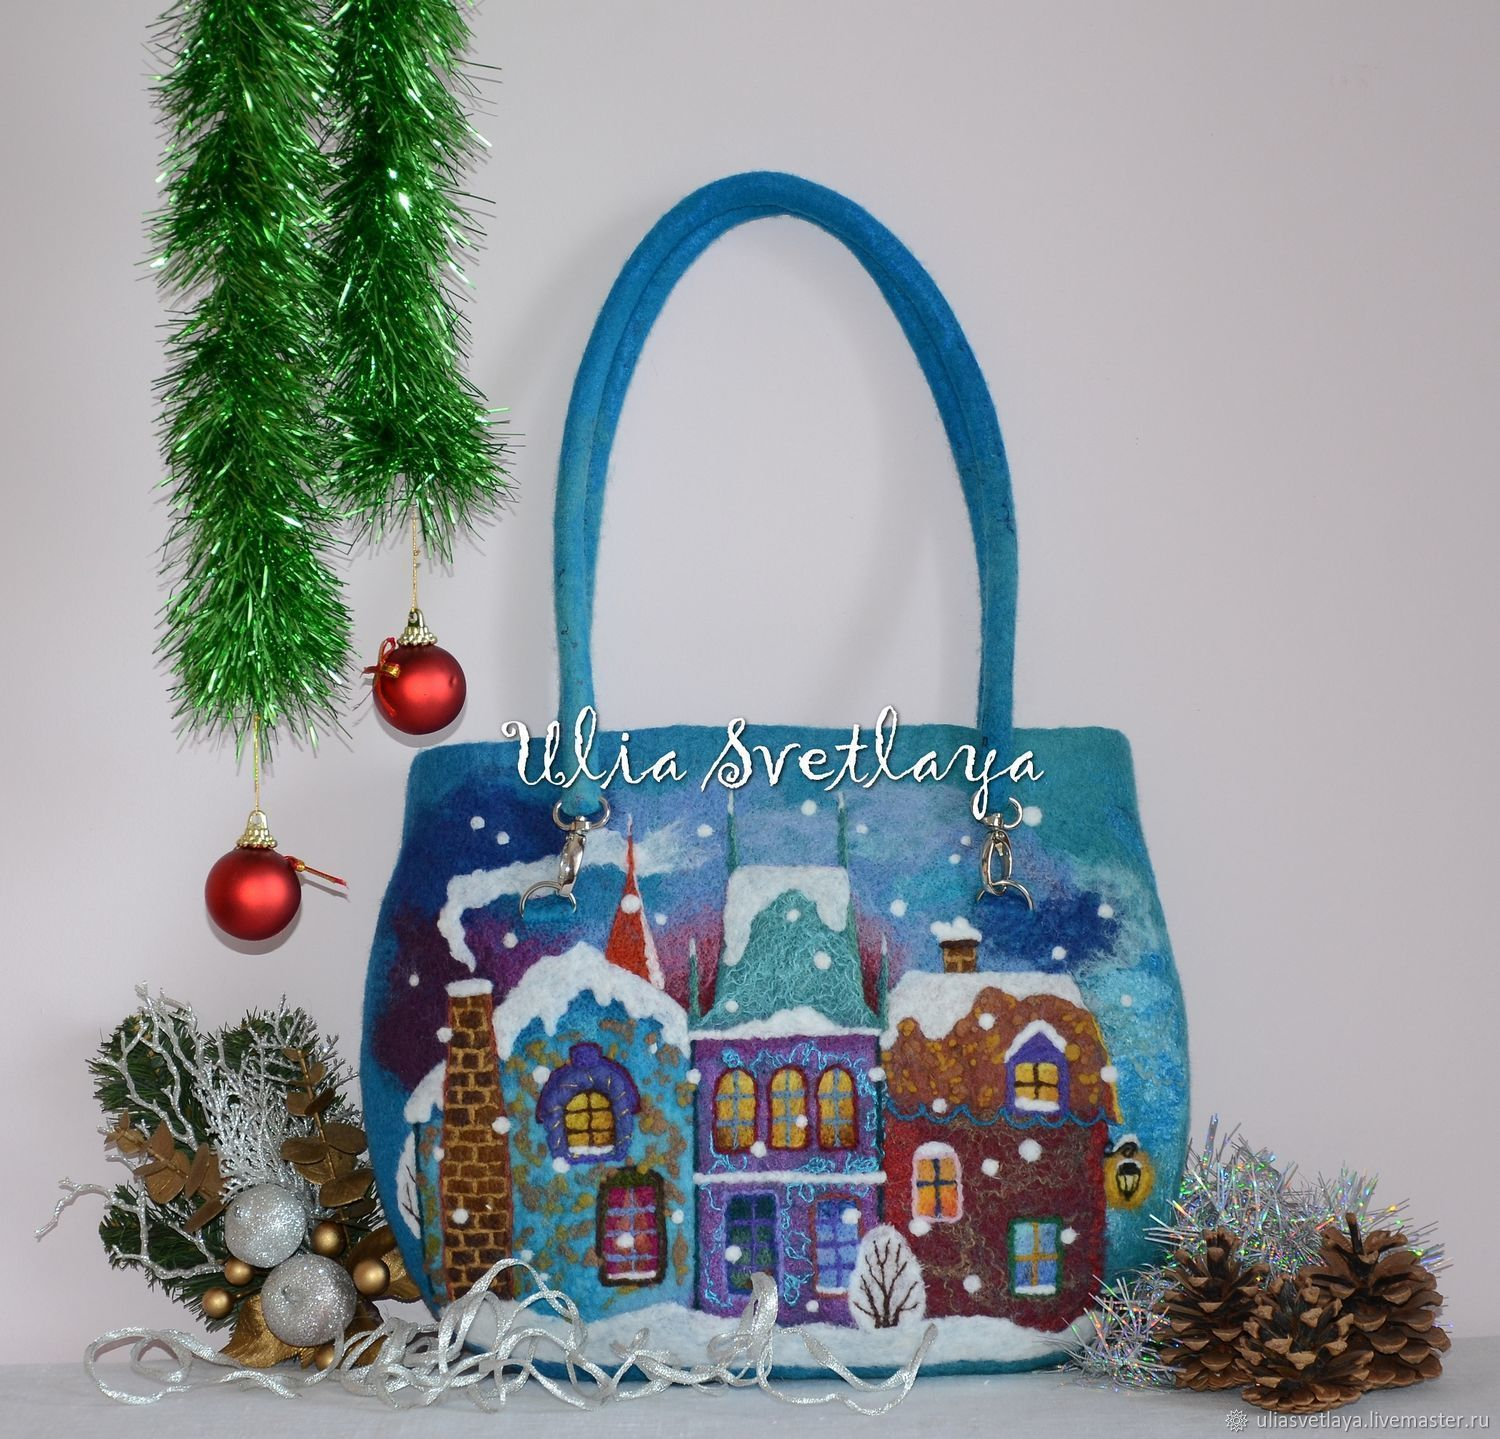 Designer handbags and accessories Julia Bright, buy the author's felted bag, beautiful shoulder bag, bag decor, bag blue, original gift for the new Year, gift girl woman